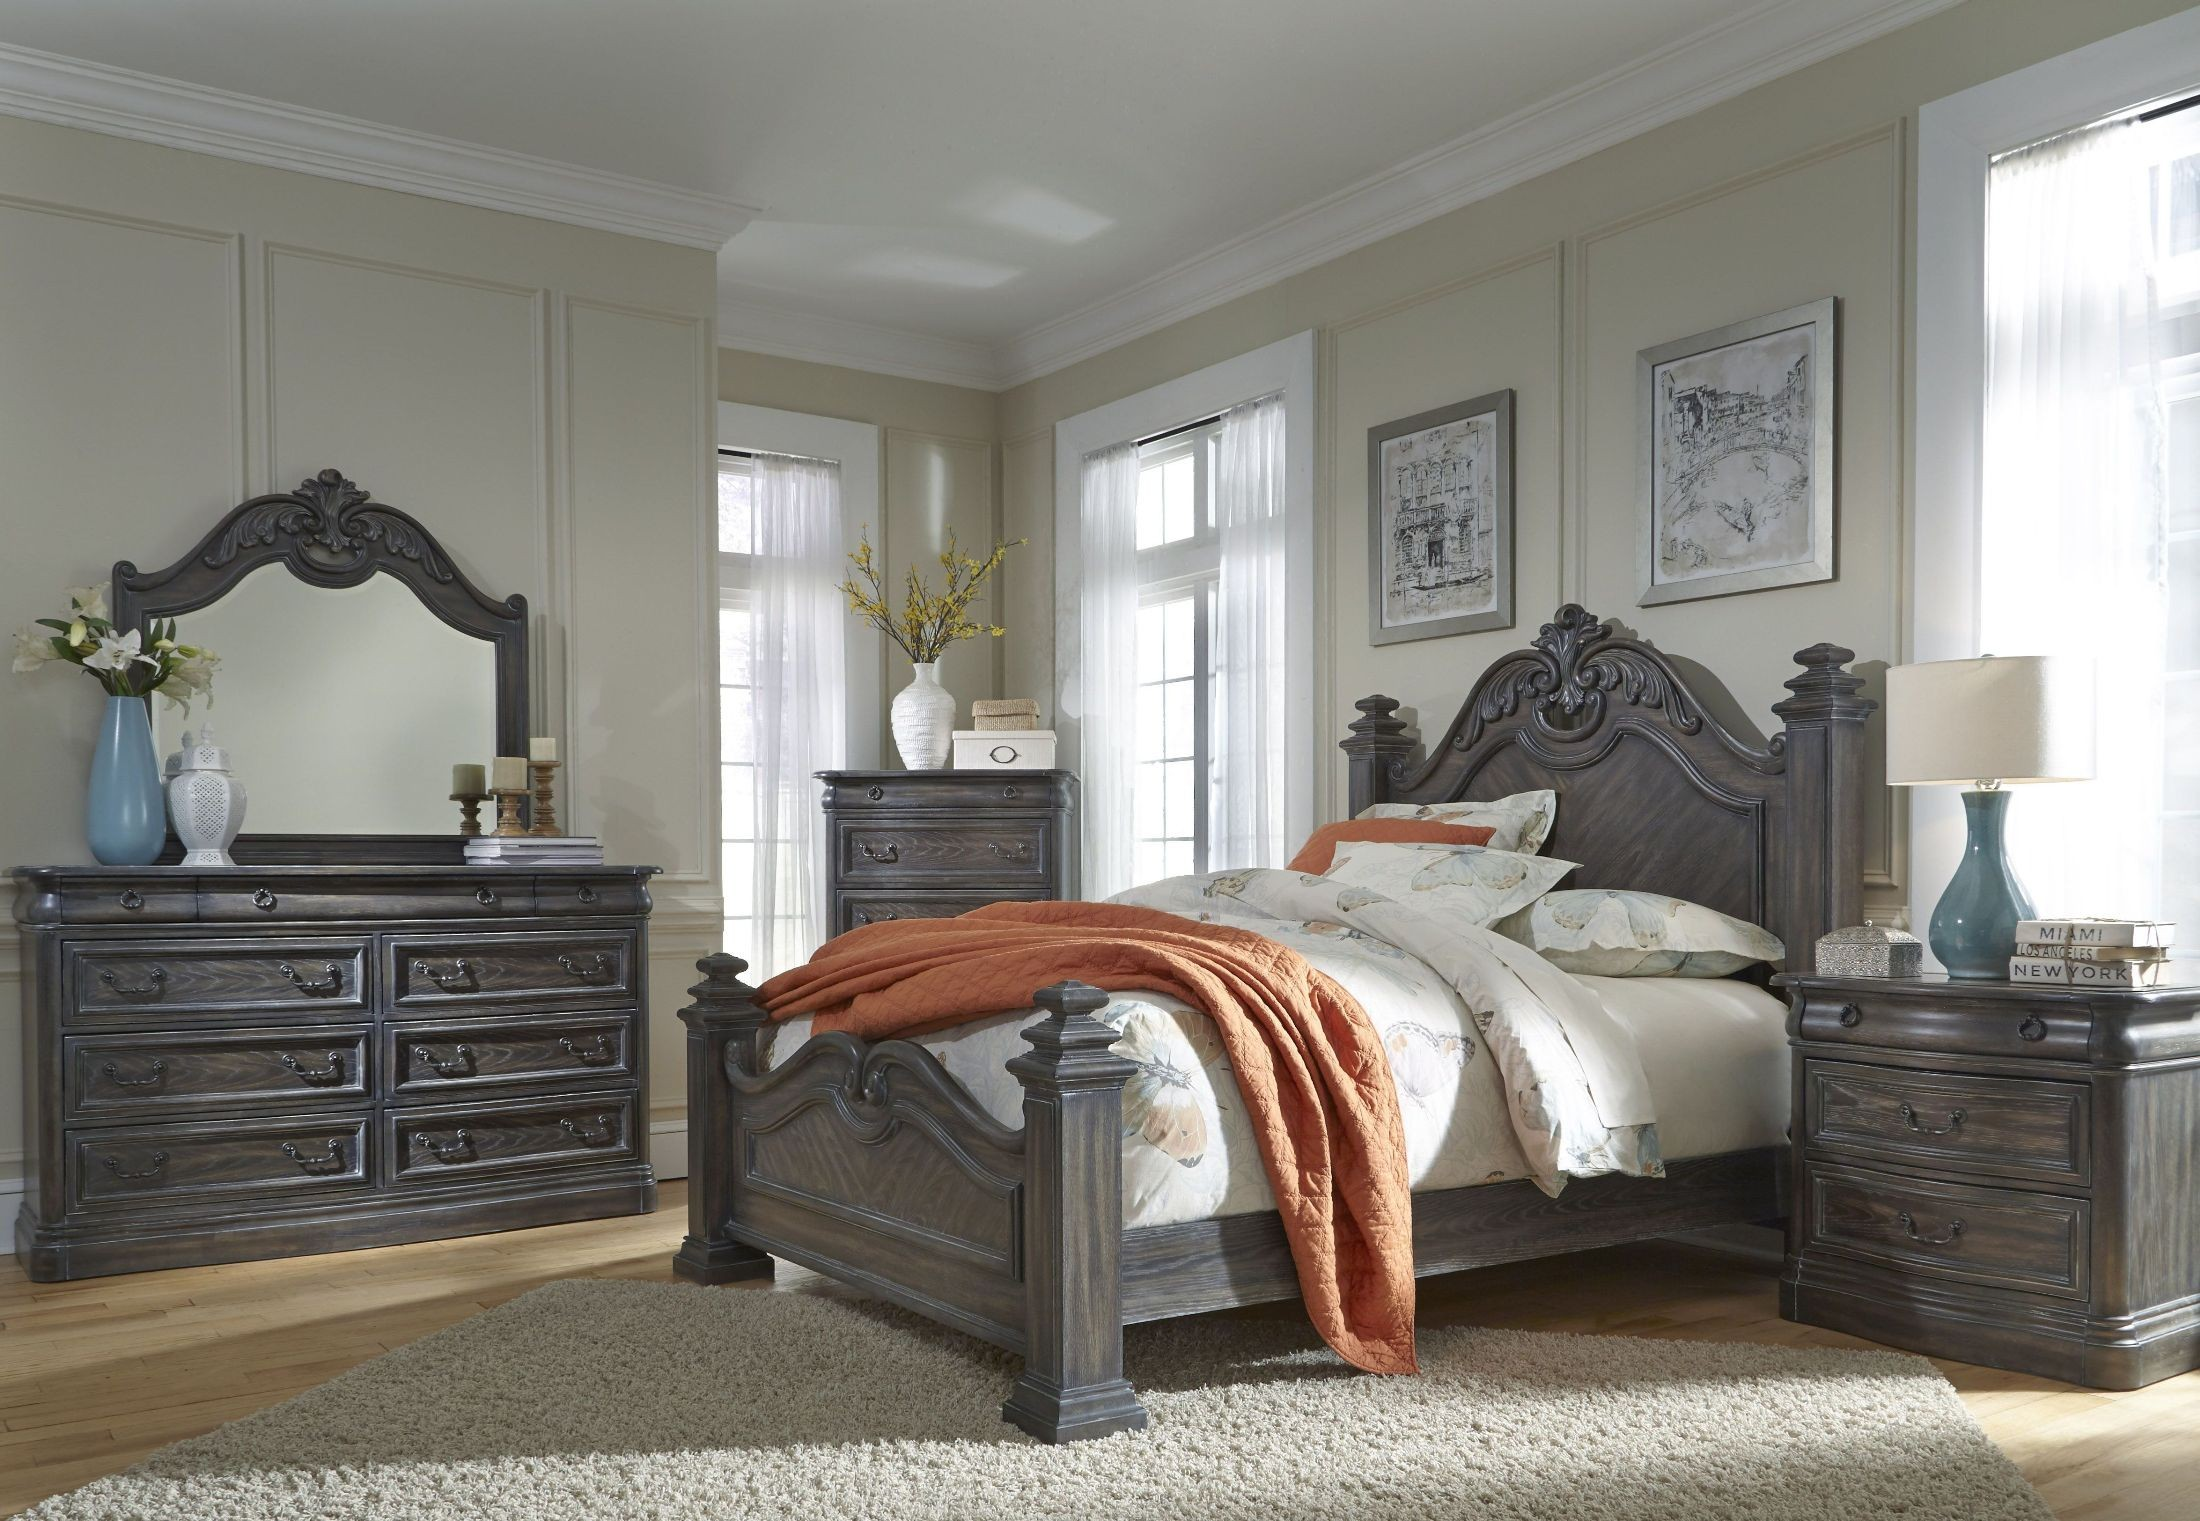 Terracina distressed smokey oak panel bedroom set b121 36 - Distressed bedroom furniture sets ...